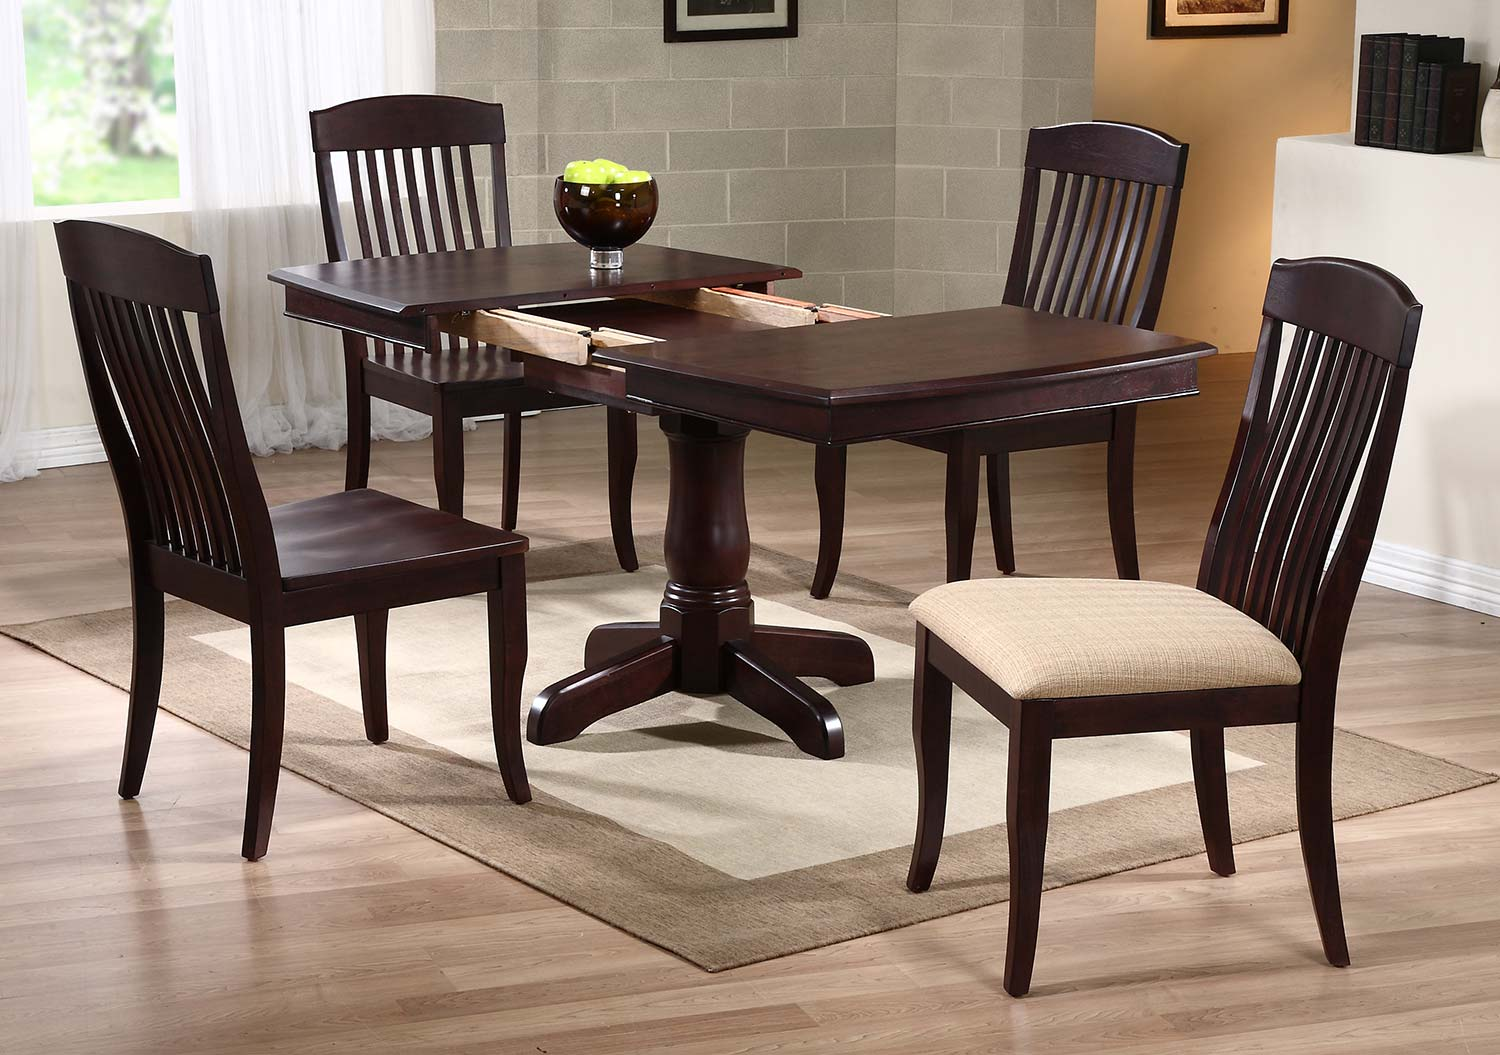 Iconic Furniture Single Pedestal Boat Shaped Dining Set with Contemporary Slat Back Dining Chair - Mocha/Mocha